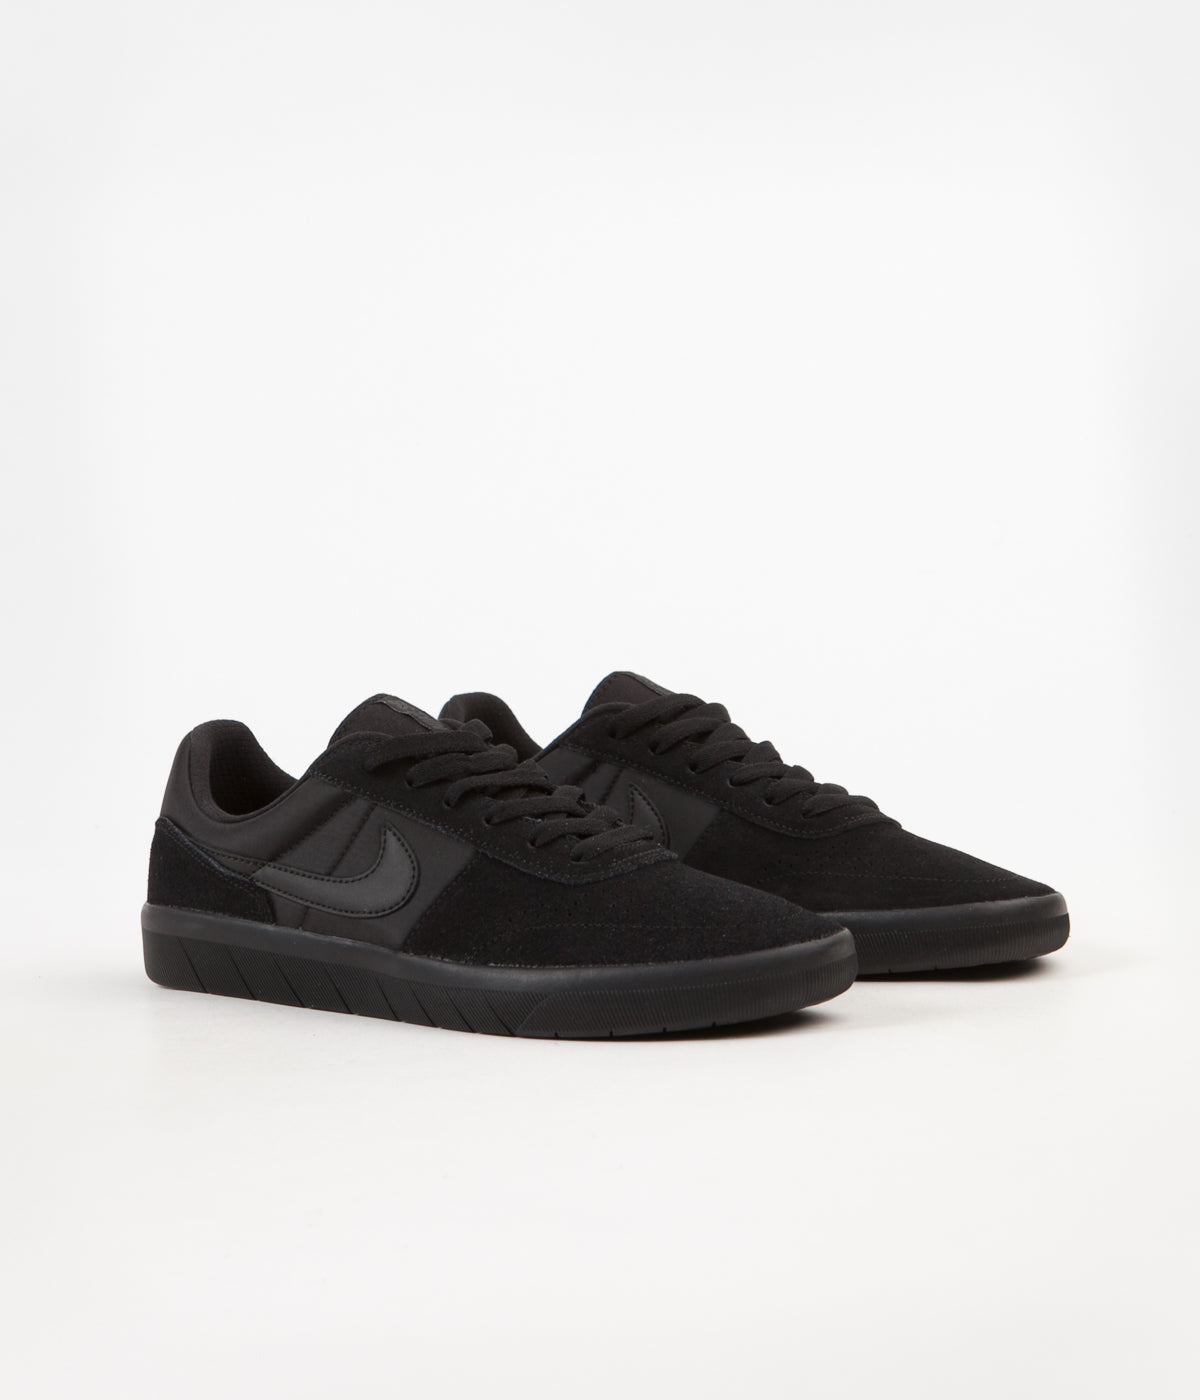 Nike SB Team Classic Shoes - Black / Black - Anthracite